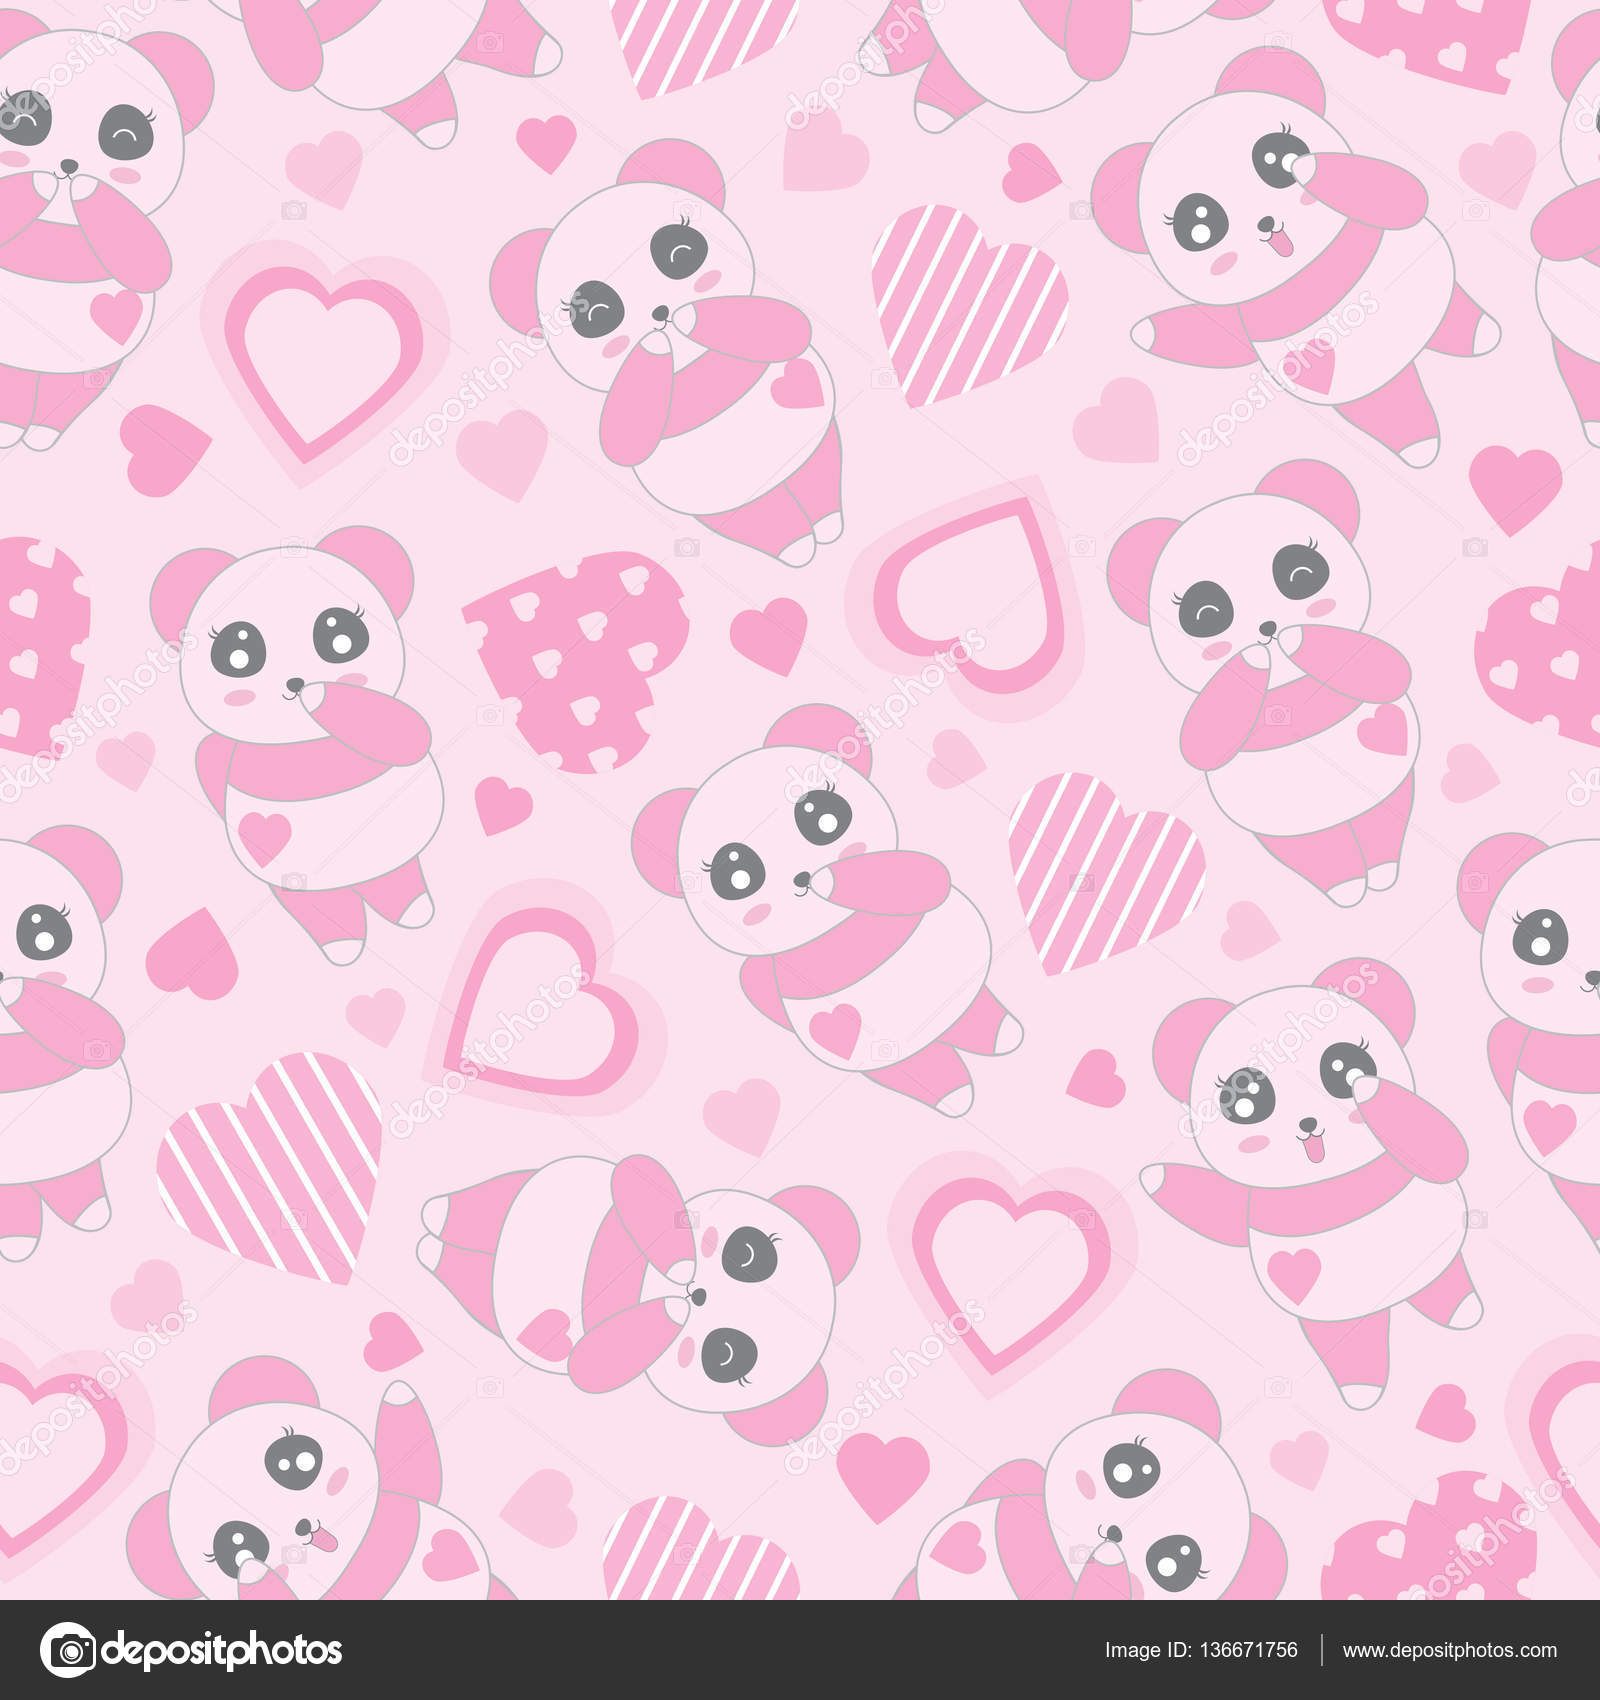 Seamless Background Of Valentines Day Illustration With Cute Baby Pink Panda And Love Shape On